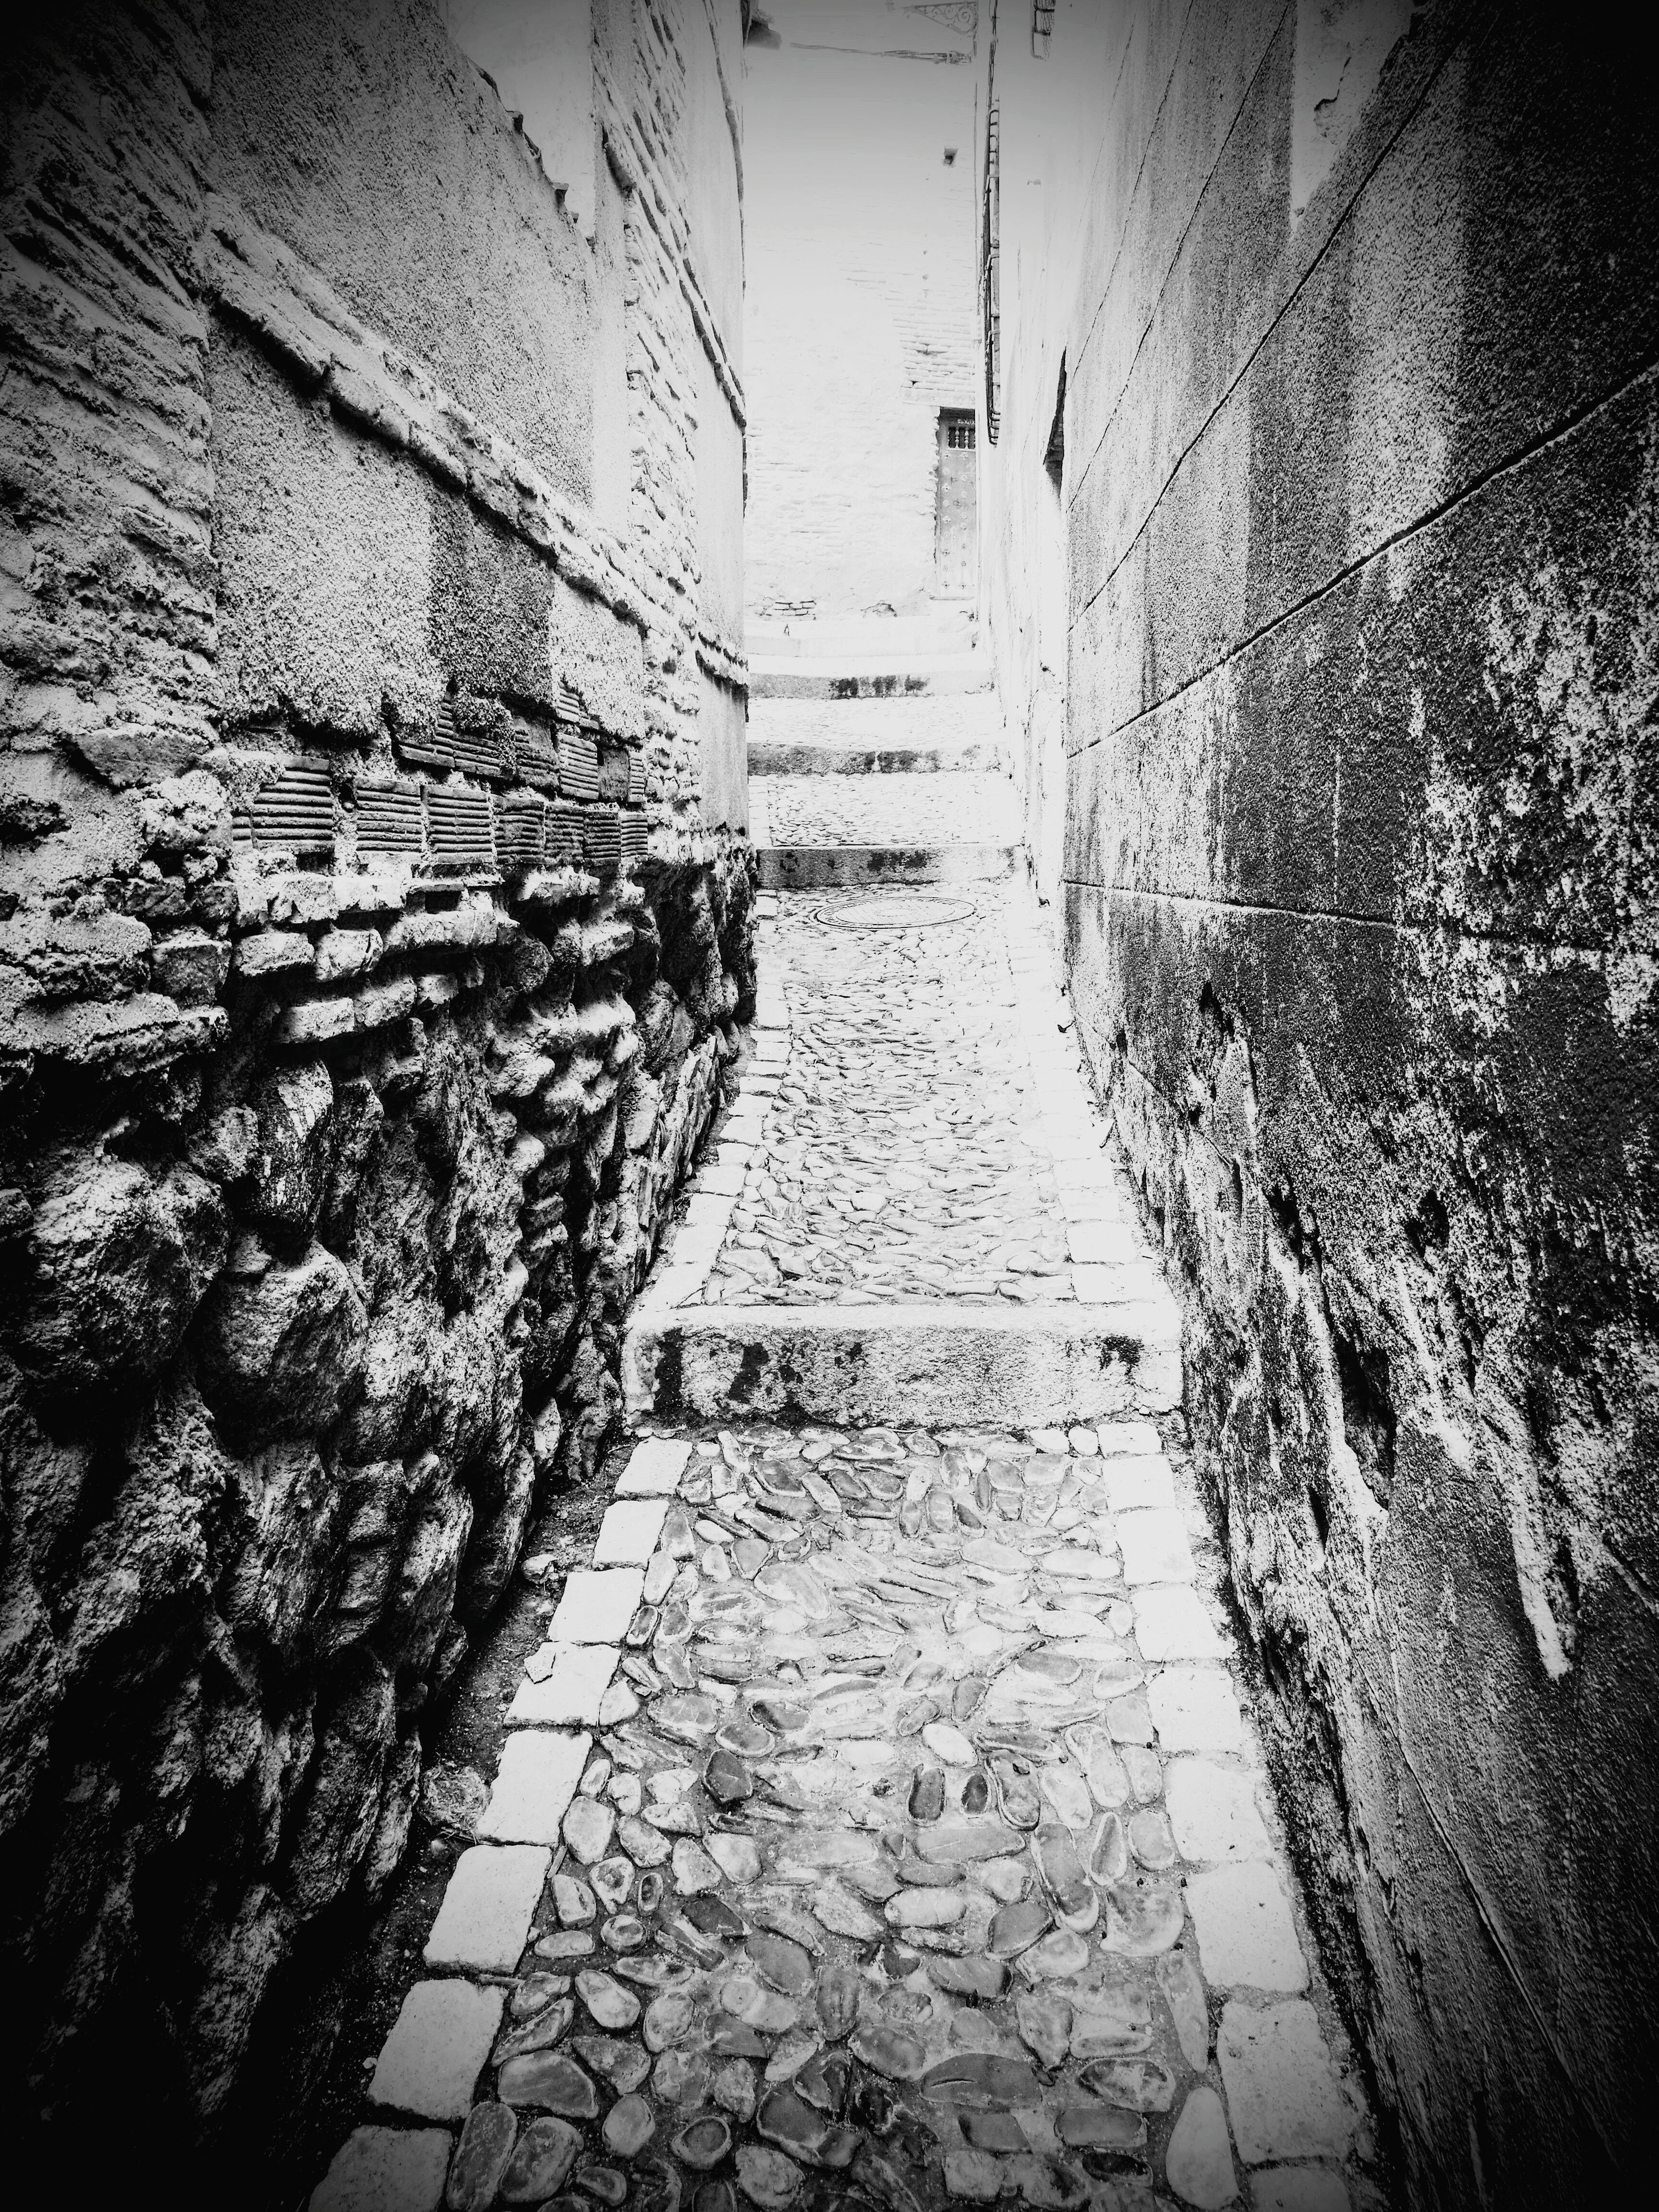 built structure, architecture, wet, the way forward, street, building exterior, transportation, rain, cobblestone, wall - building feature, day, no people, outdoors, window, paving stone, footpath, city, water, diminishing perspective